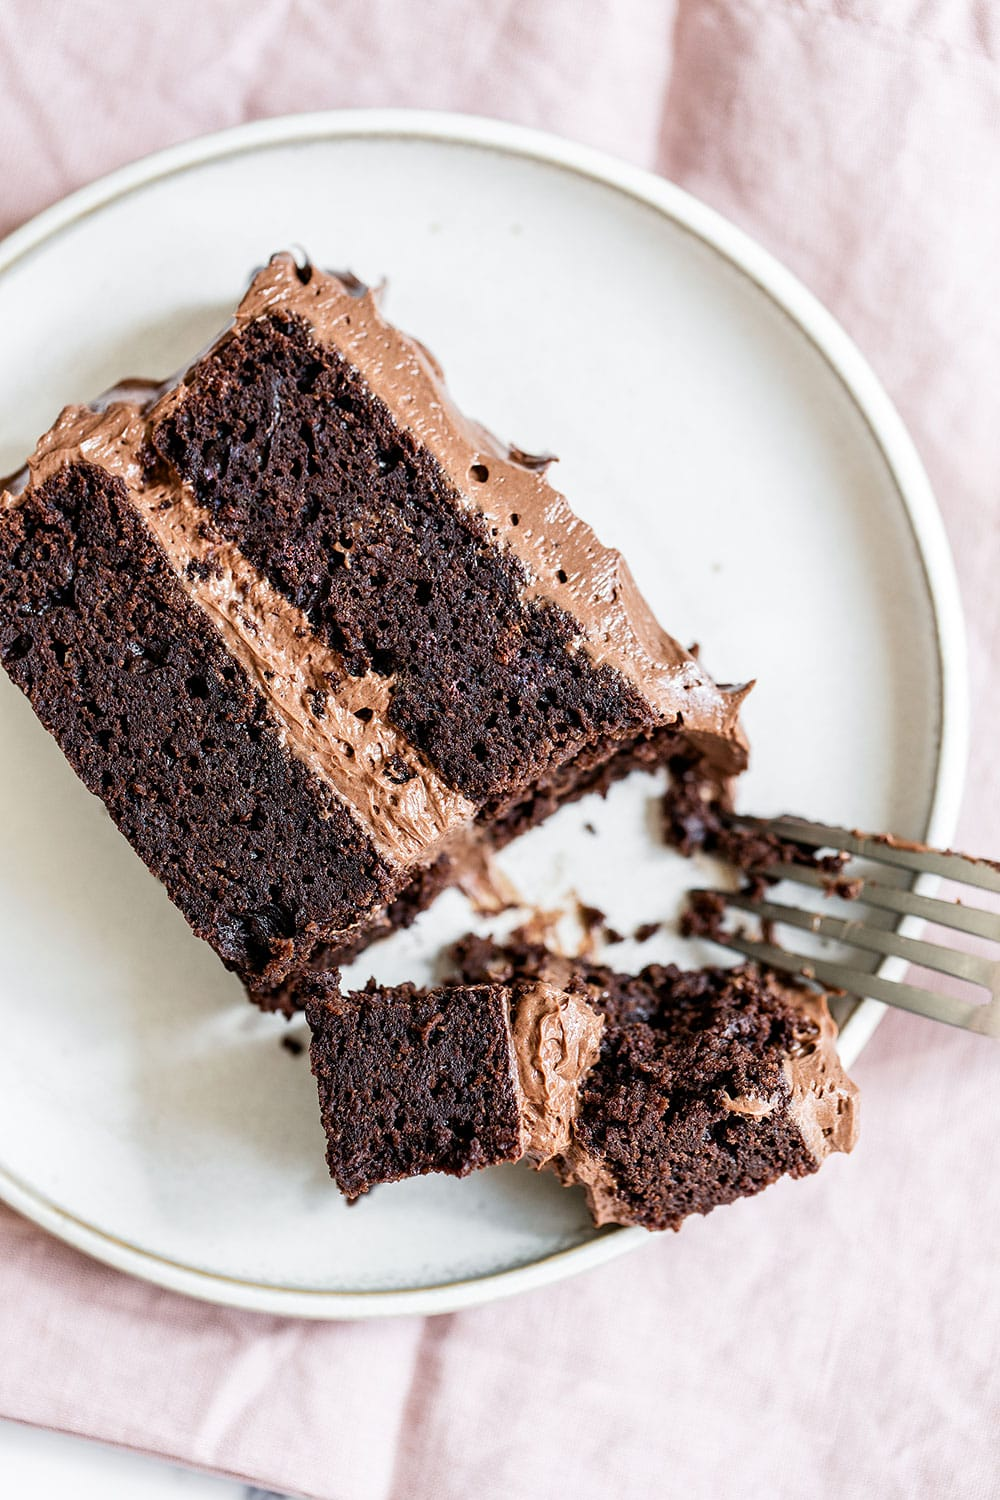 Rich slice of the best chocolate cake recipe with a fork taking a bite